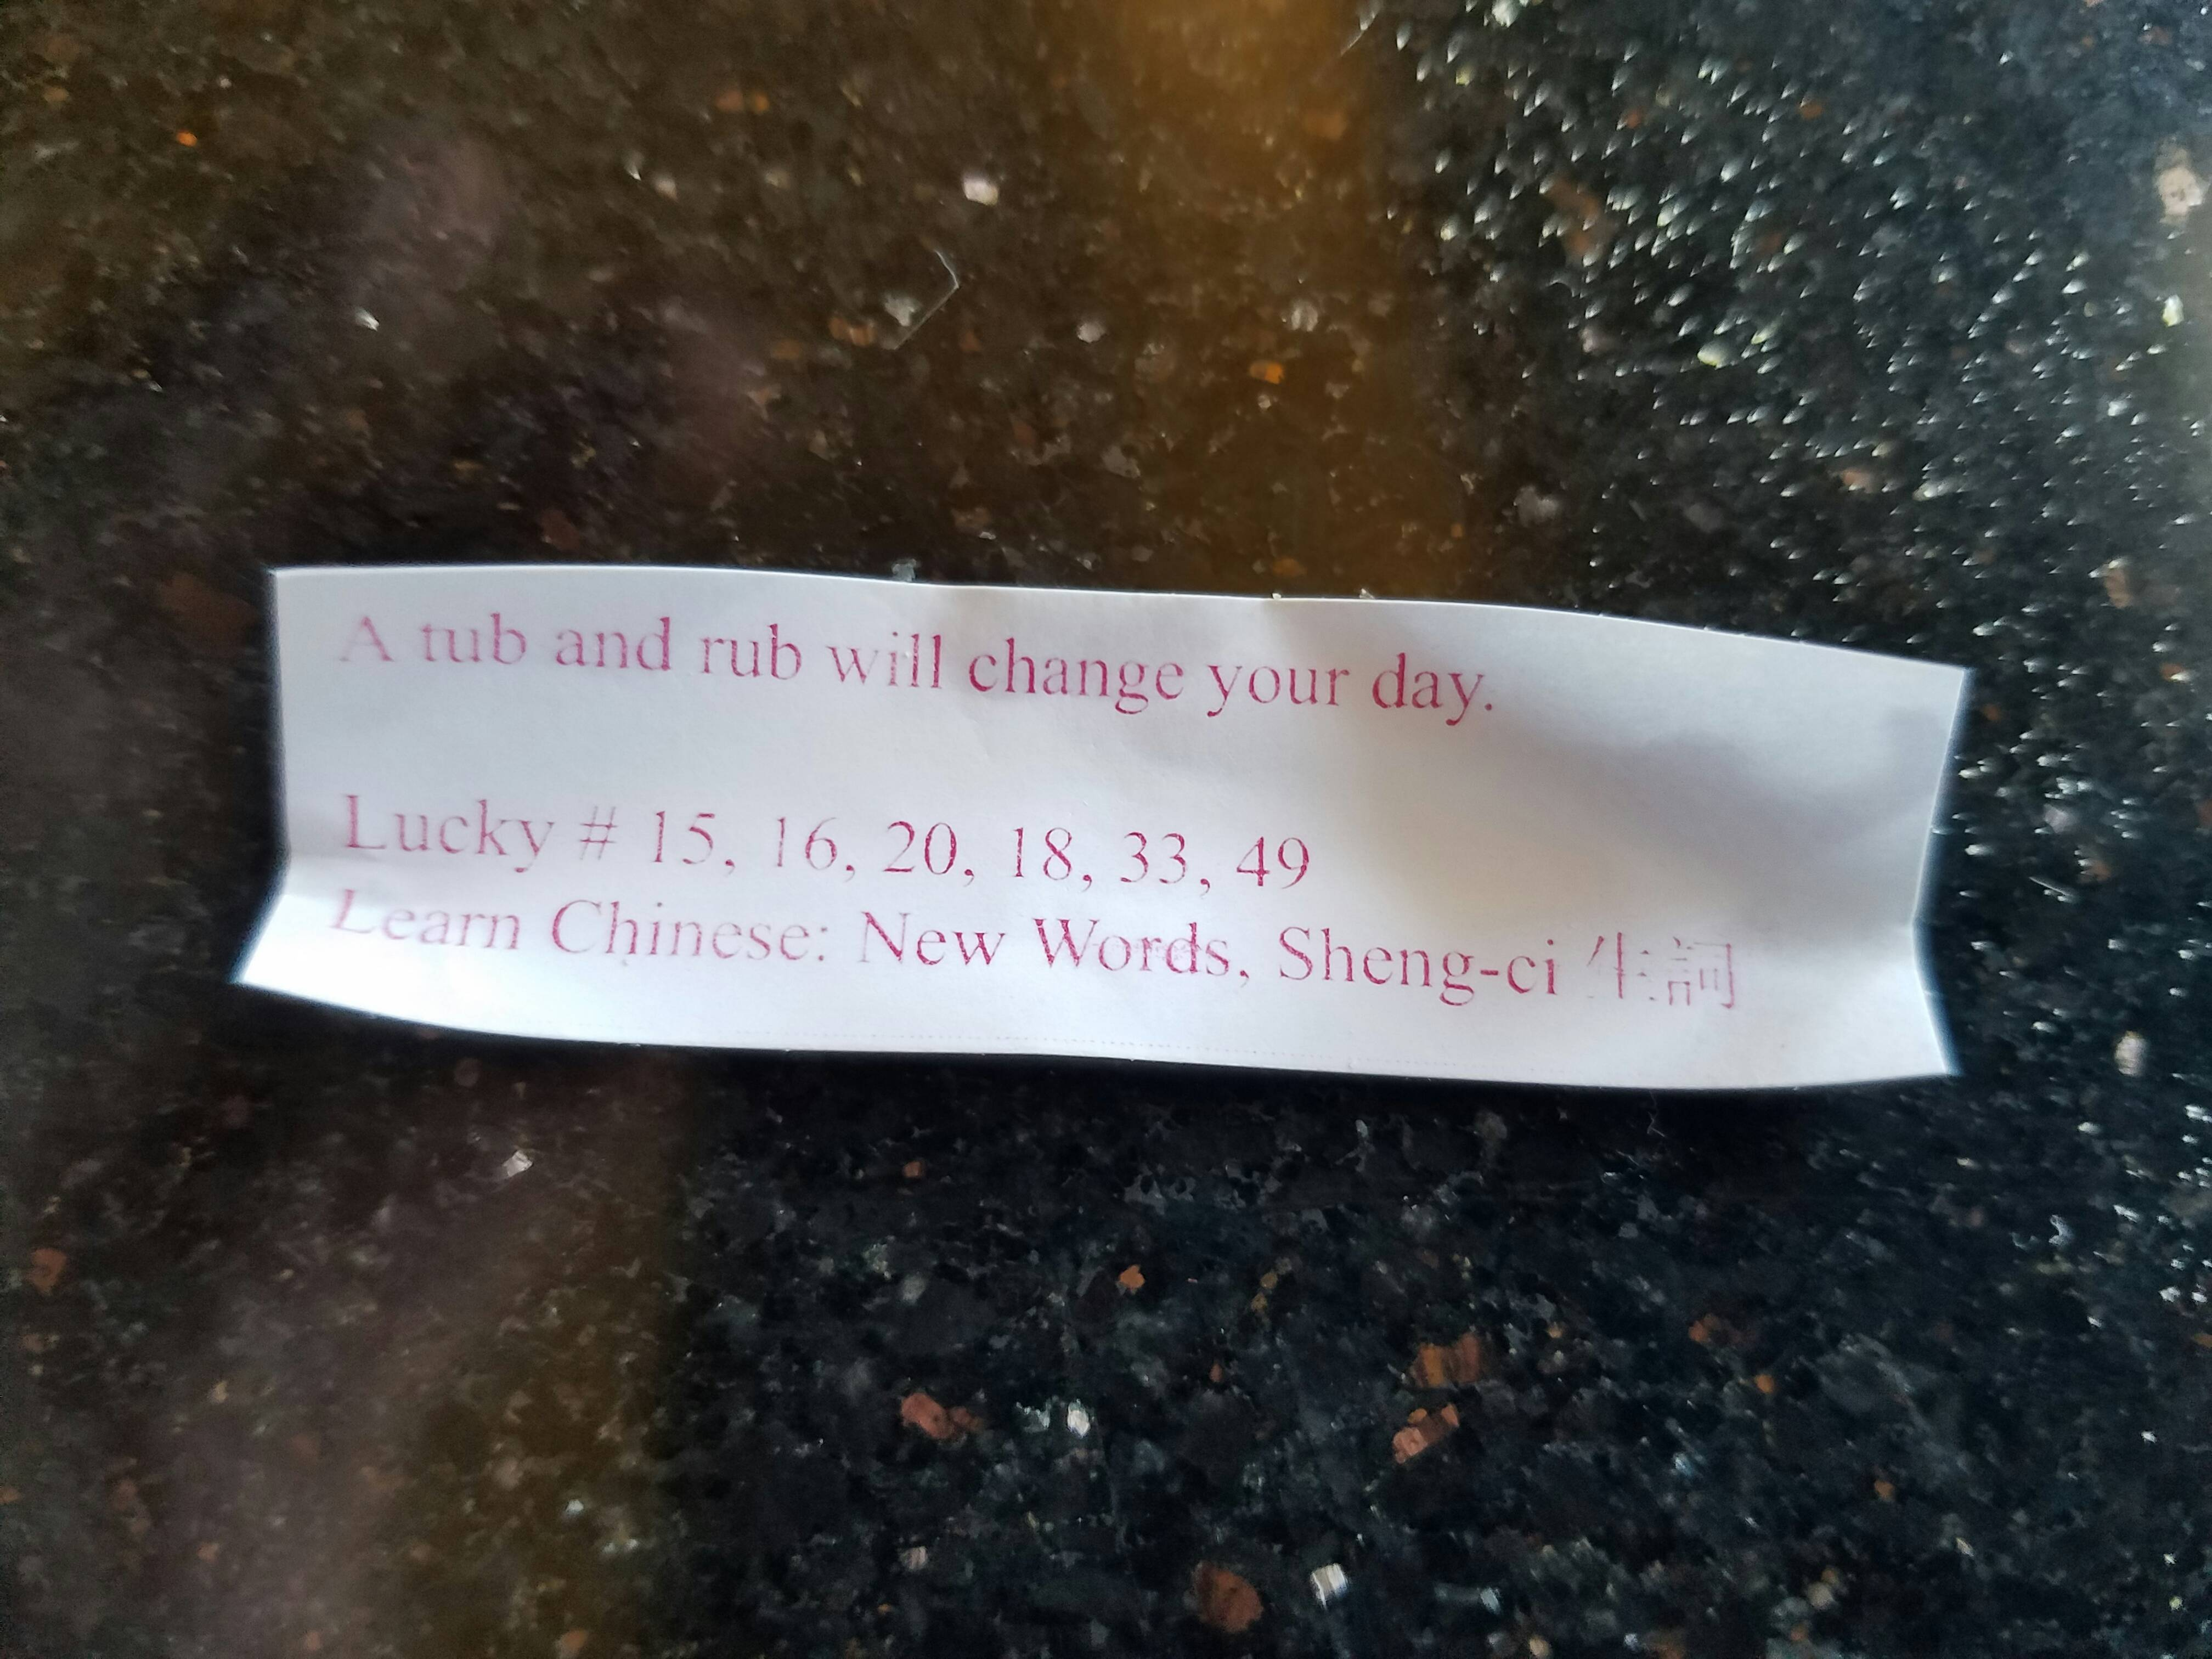 This fortune cookie knows what's up